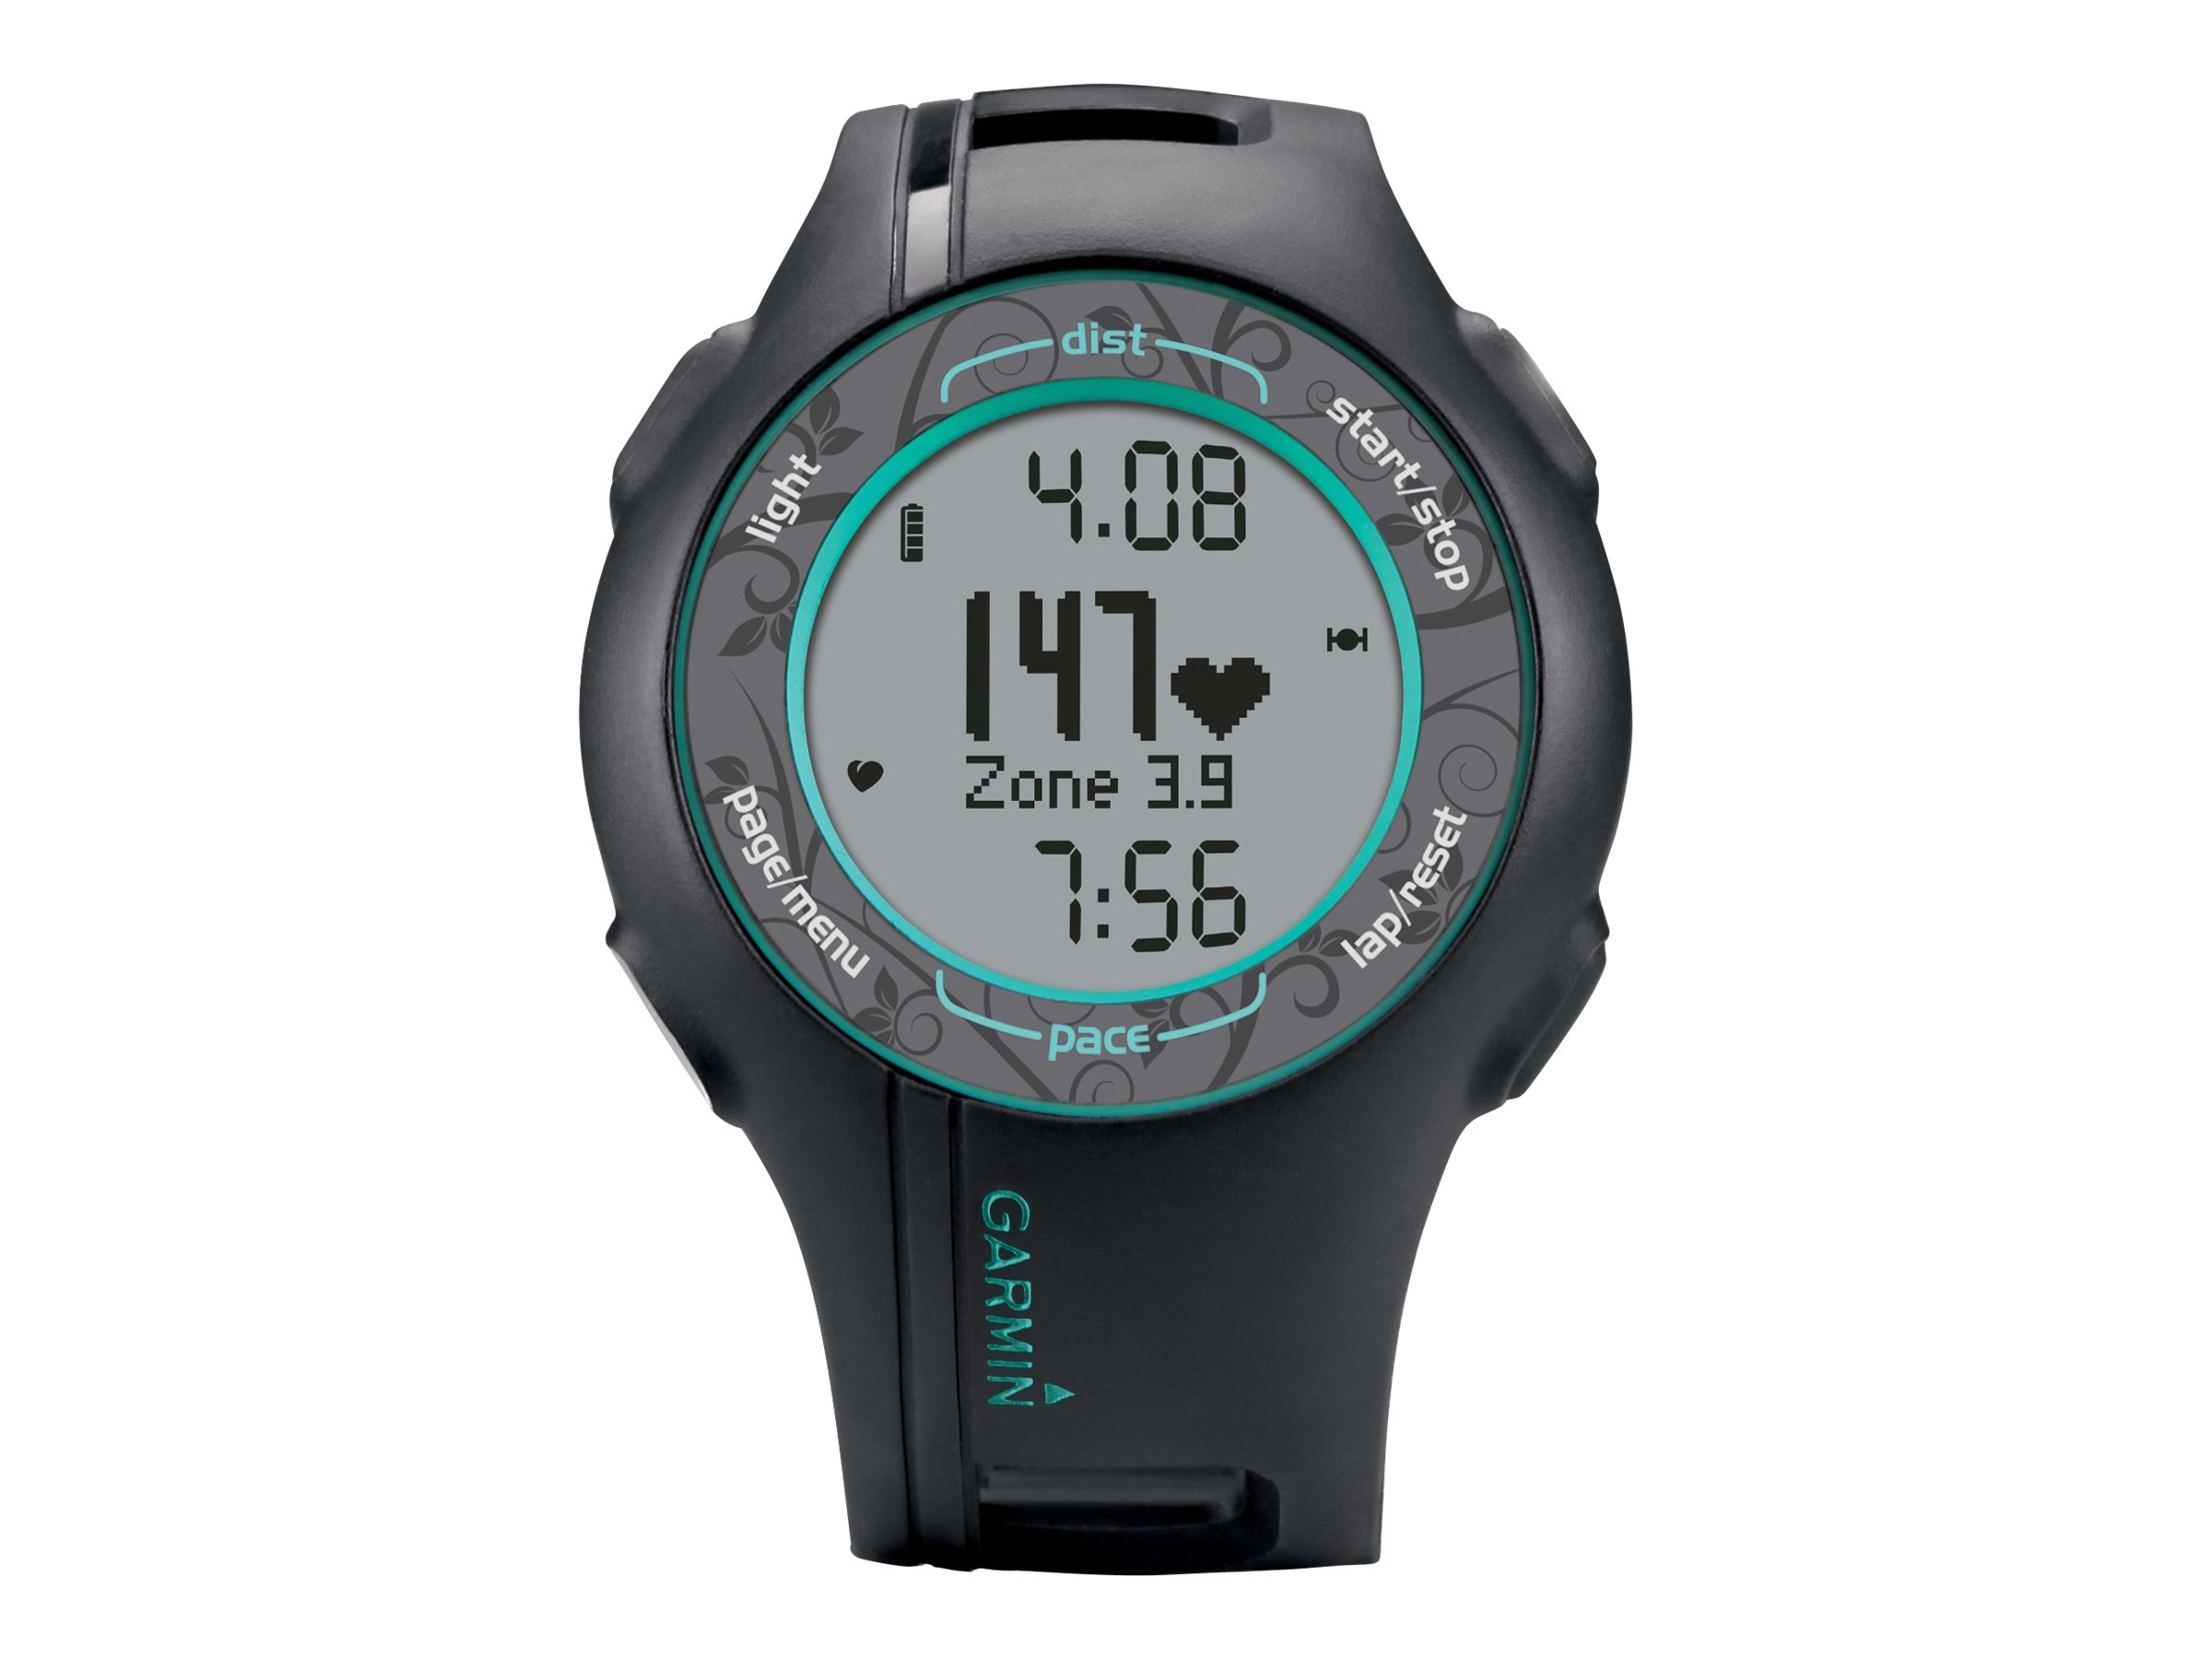 Garmin Forerunner 210 With Heart Rate Monitor, Teal, 010-00863-38